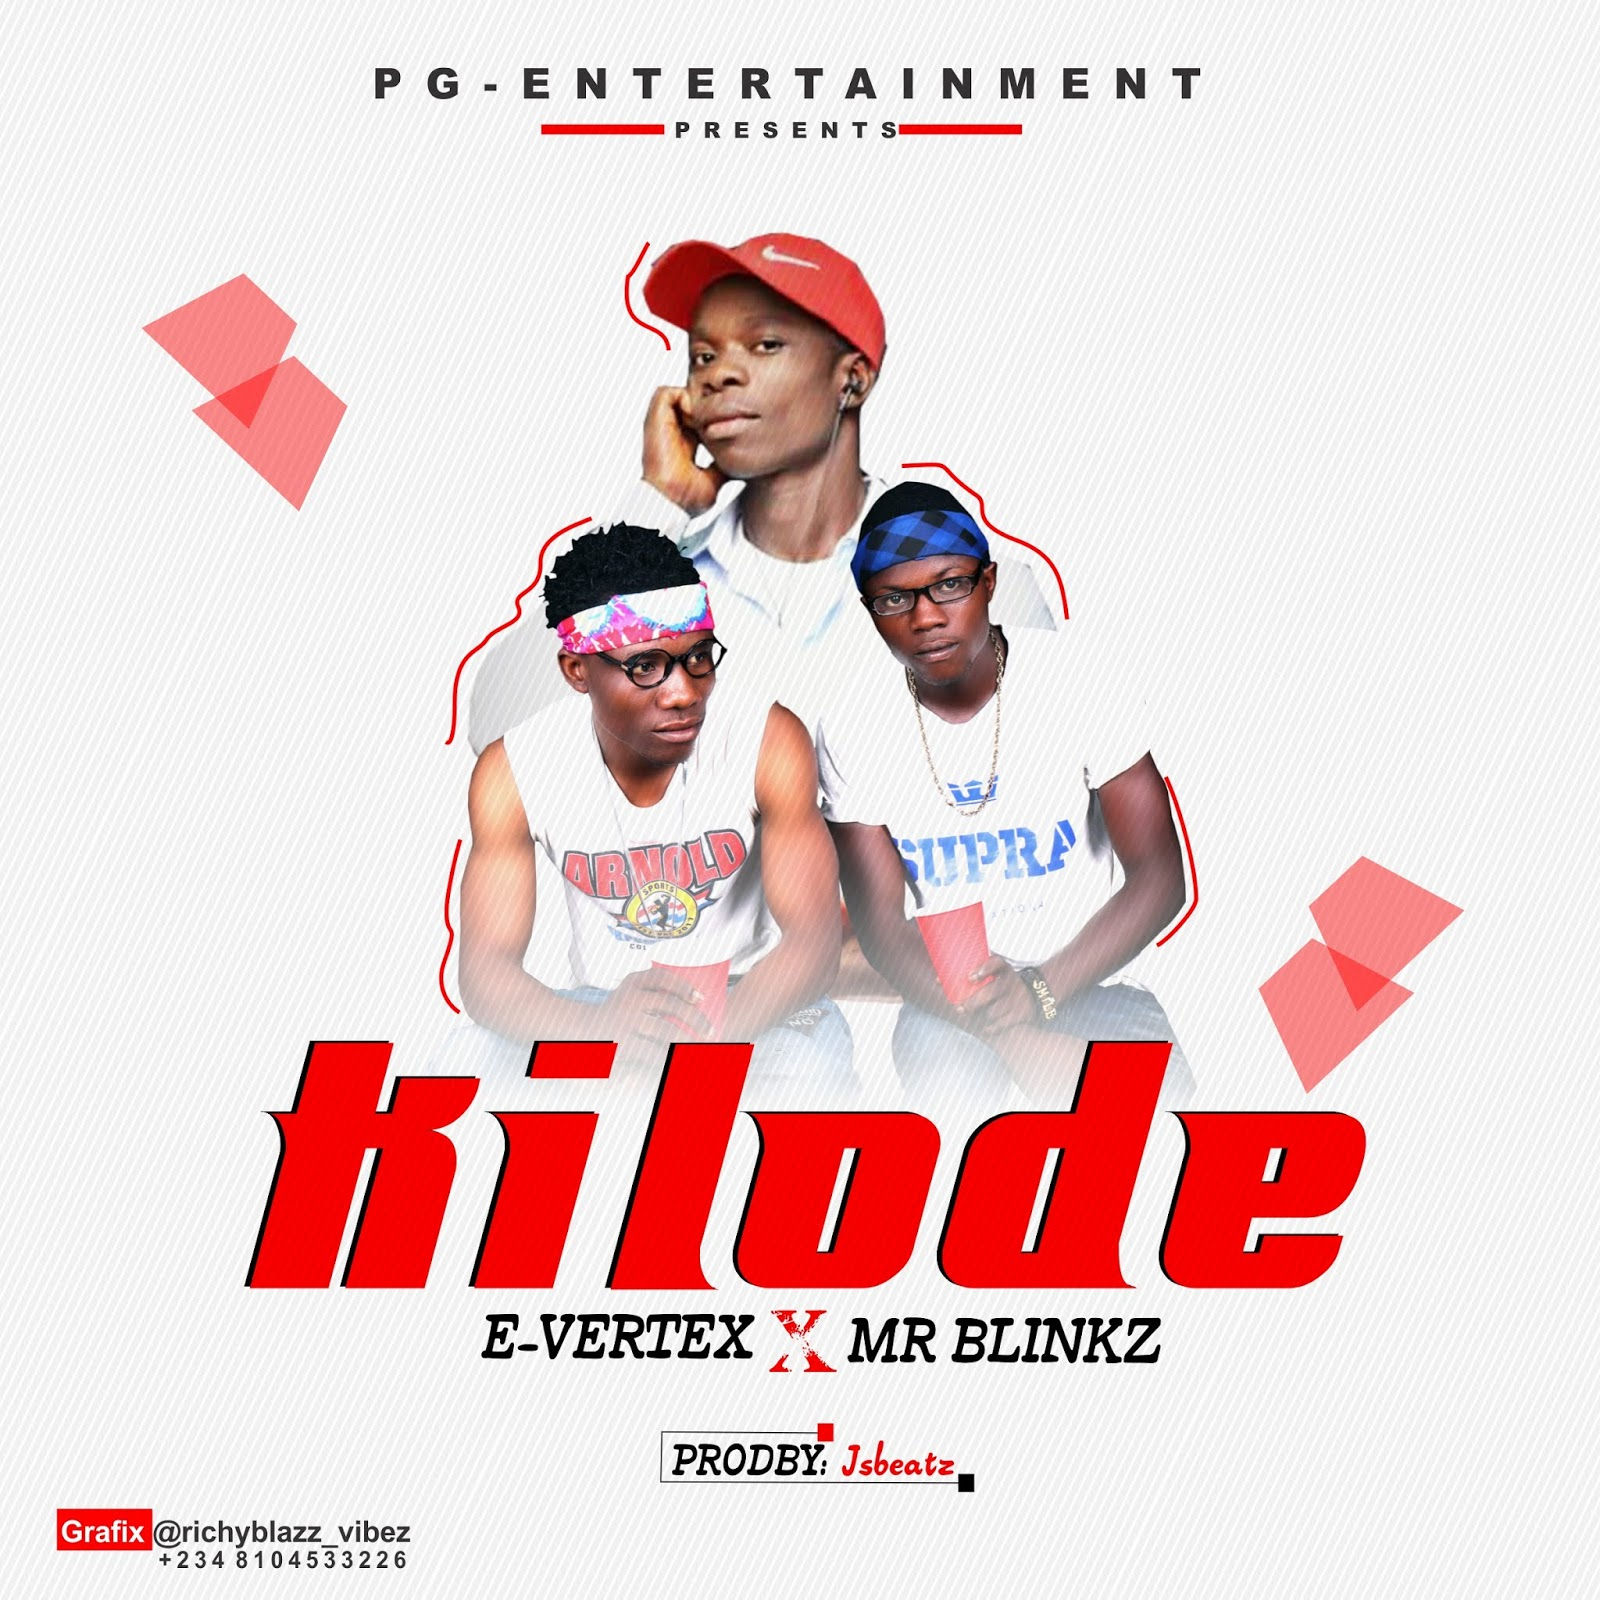 LatestStoryLine Com: Music || E-vertex Ft Mr Blinks - KILODE